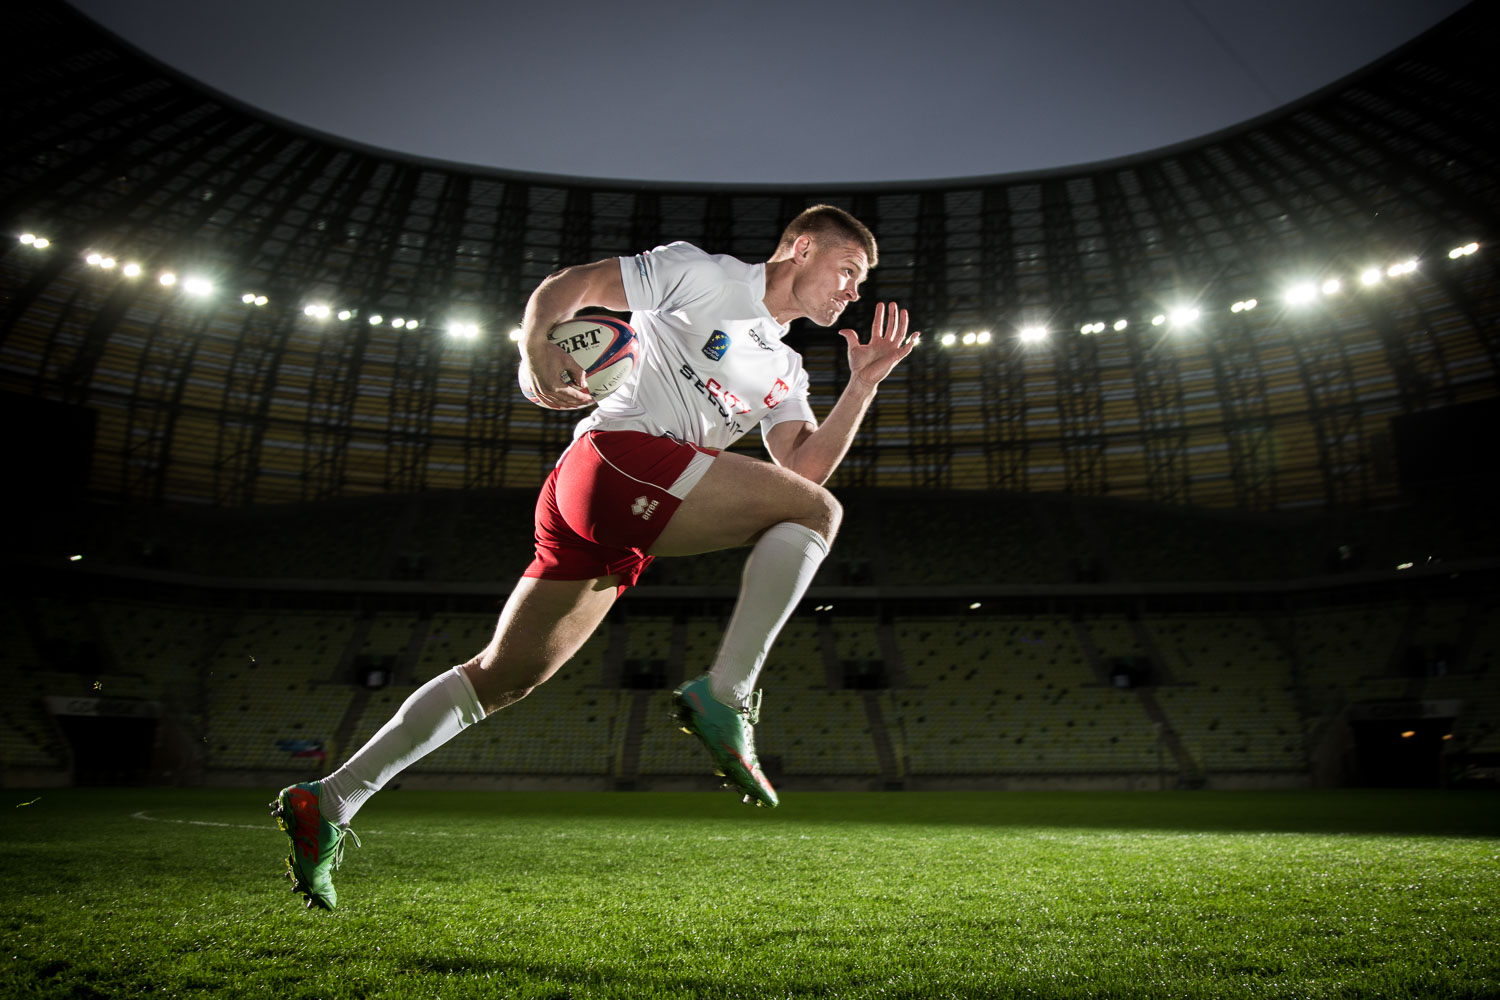 Rugby - Sports Photography by Tomek Gola - Gola.PRO